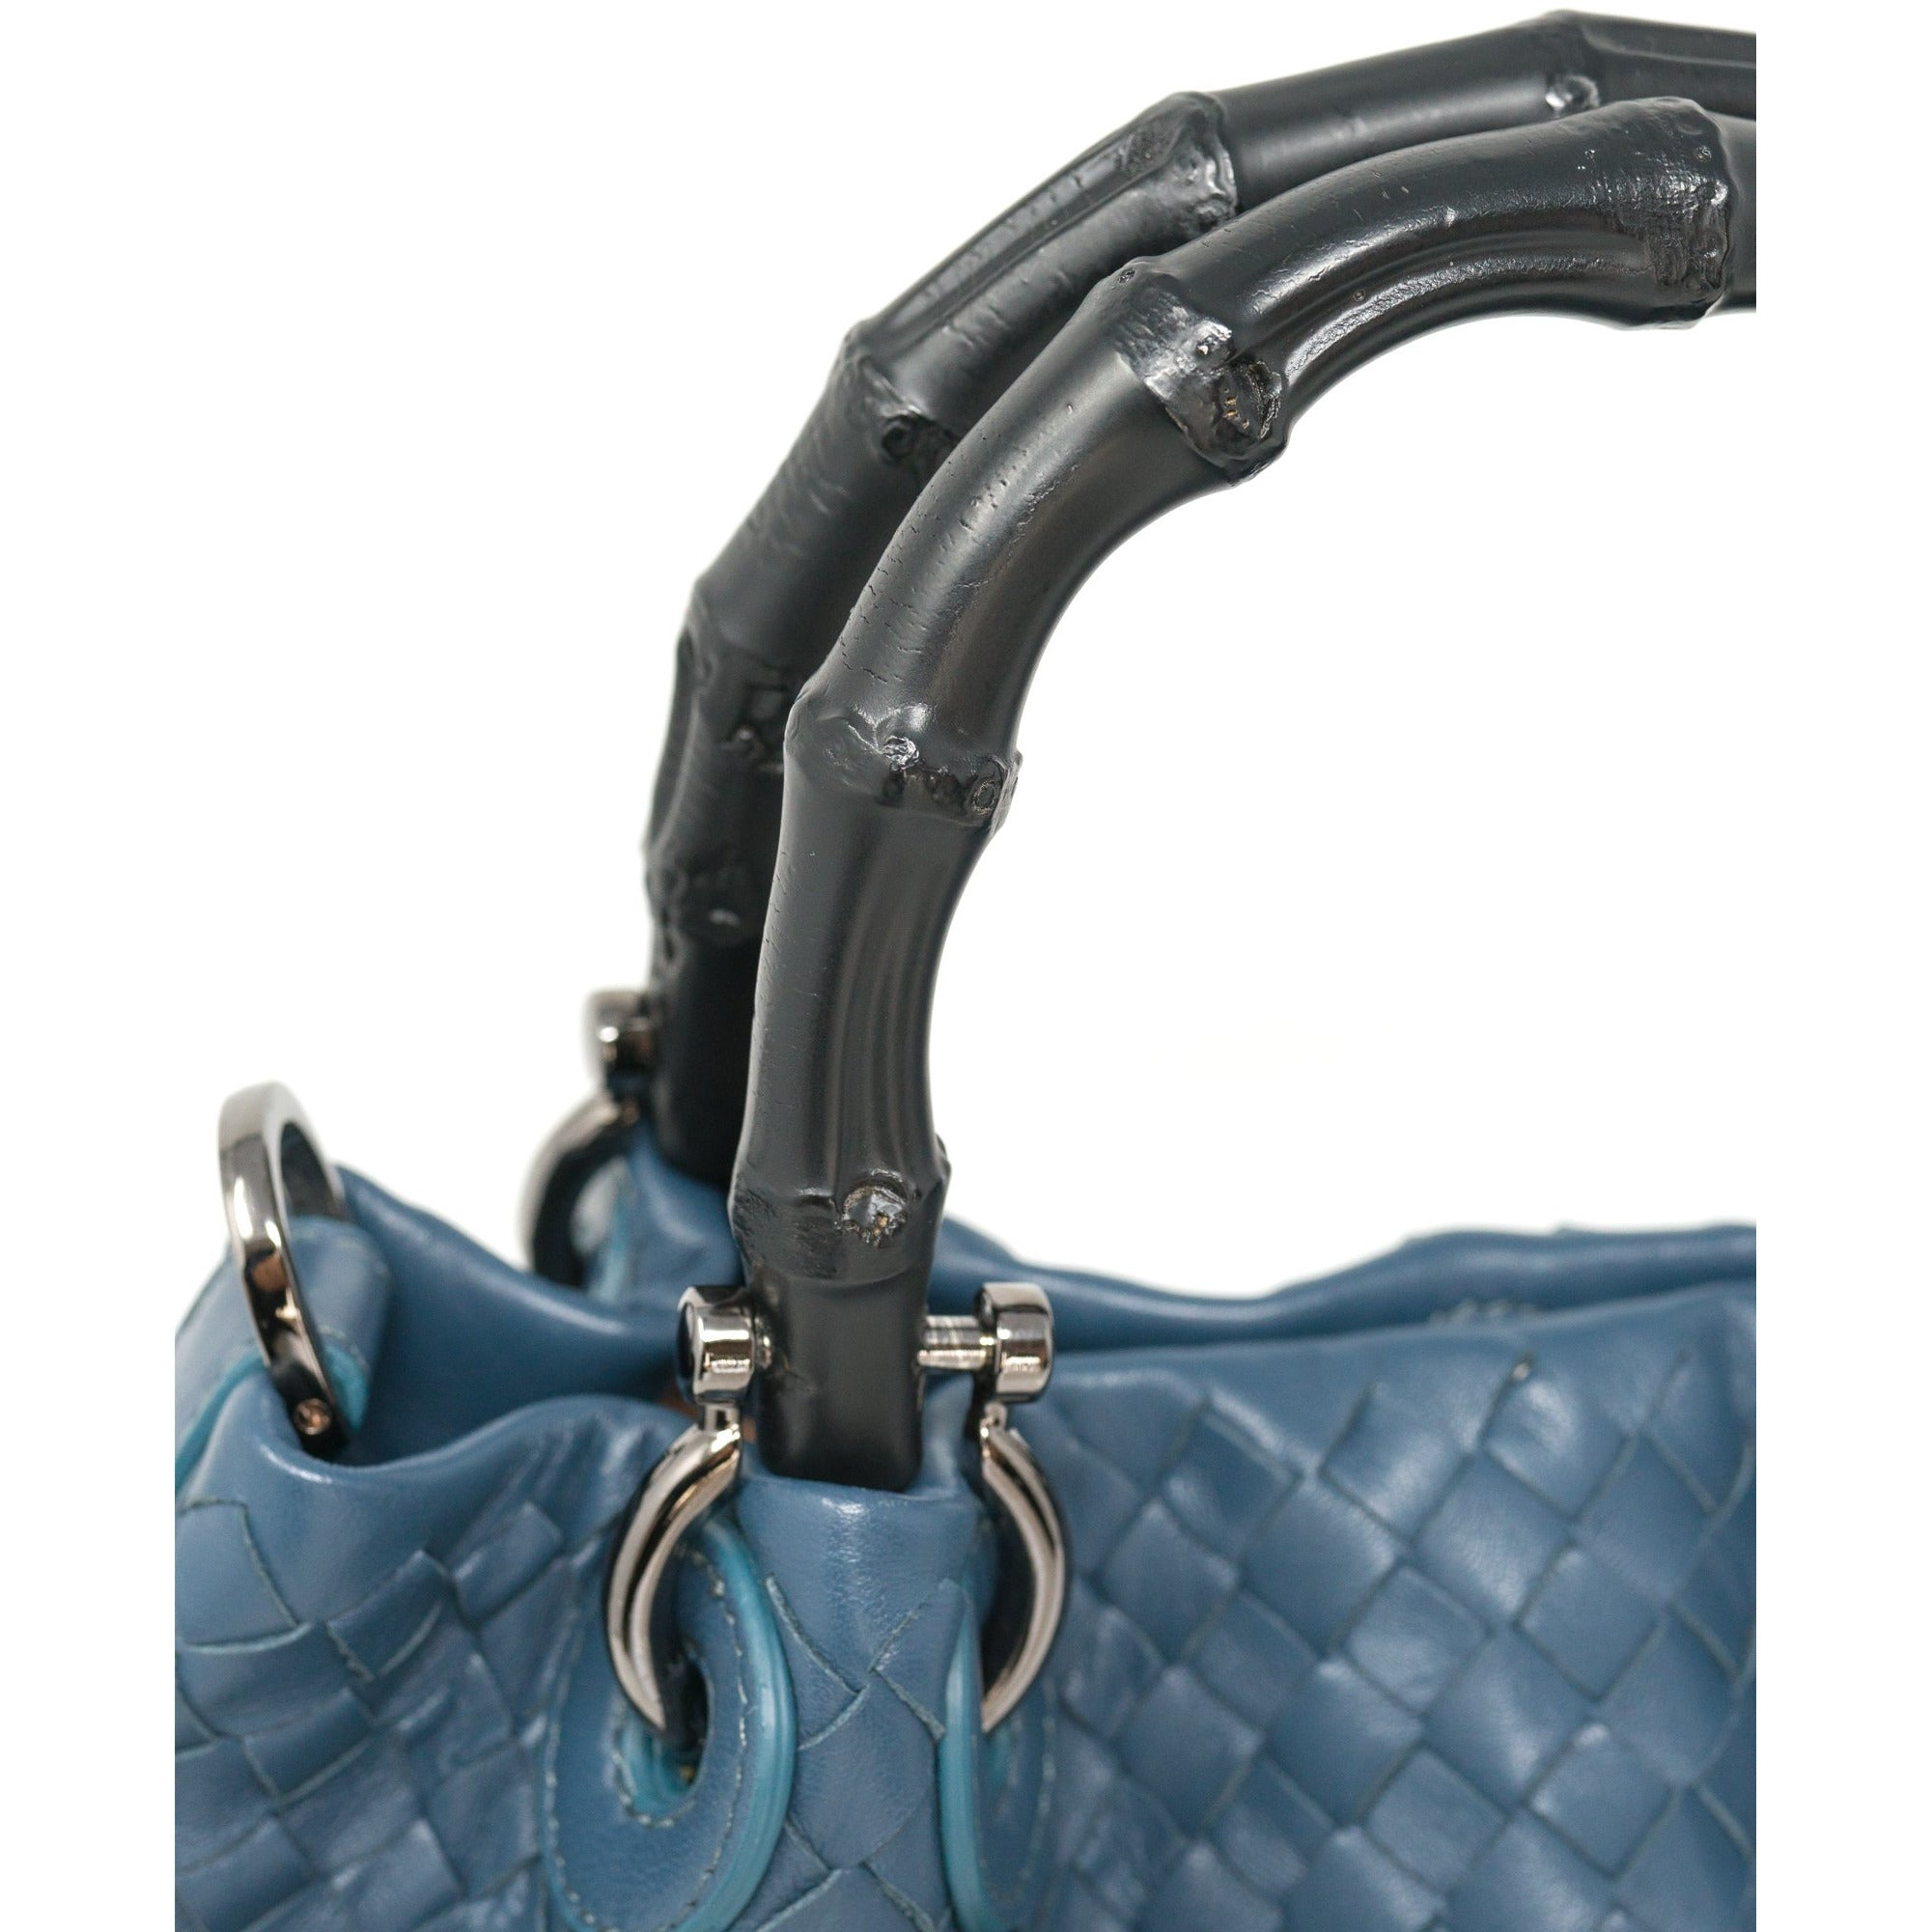 JT303 5551 25 Intrecciato Diagonale with Bamboo Handles Leather Top Handle Bag - Jennifer Tattanelli